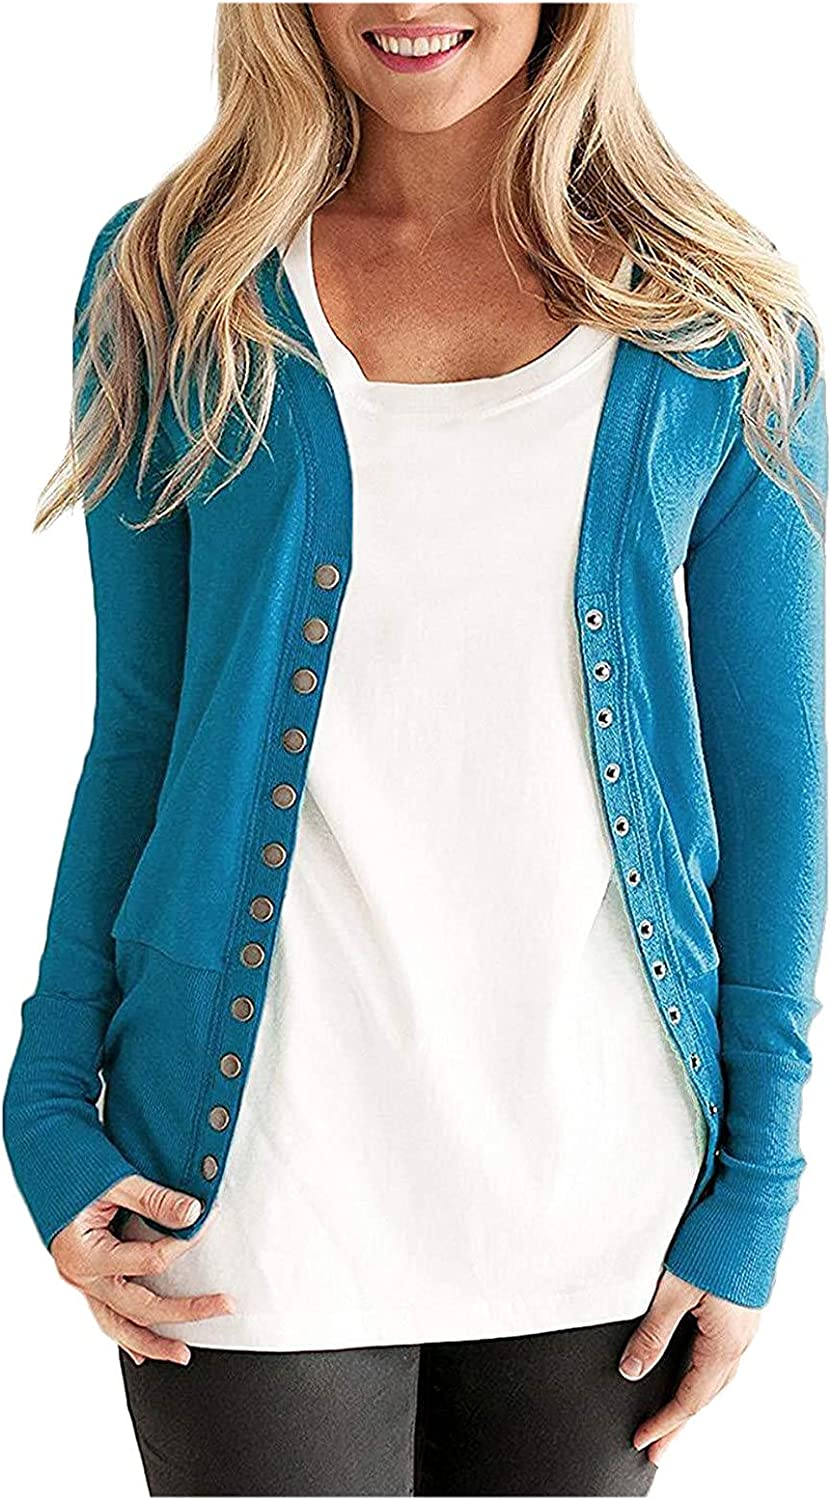 Elegant Button Down Sweater Cardigans for Women, Fashion Color Block Cardigan Cropped v Neck Open Front Cardigans Oversized